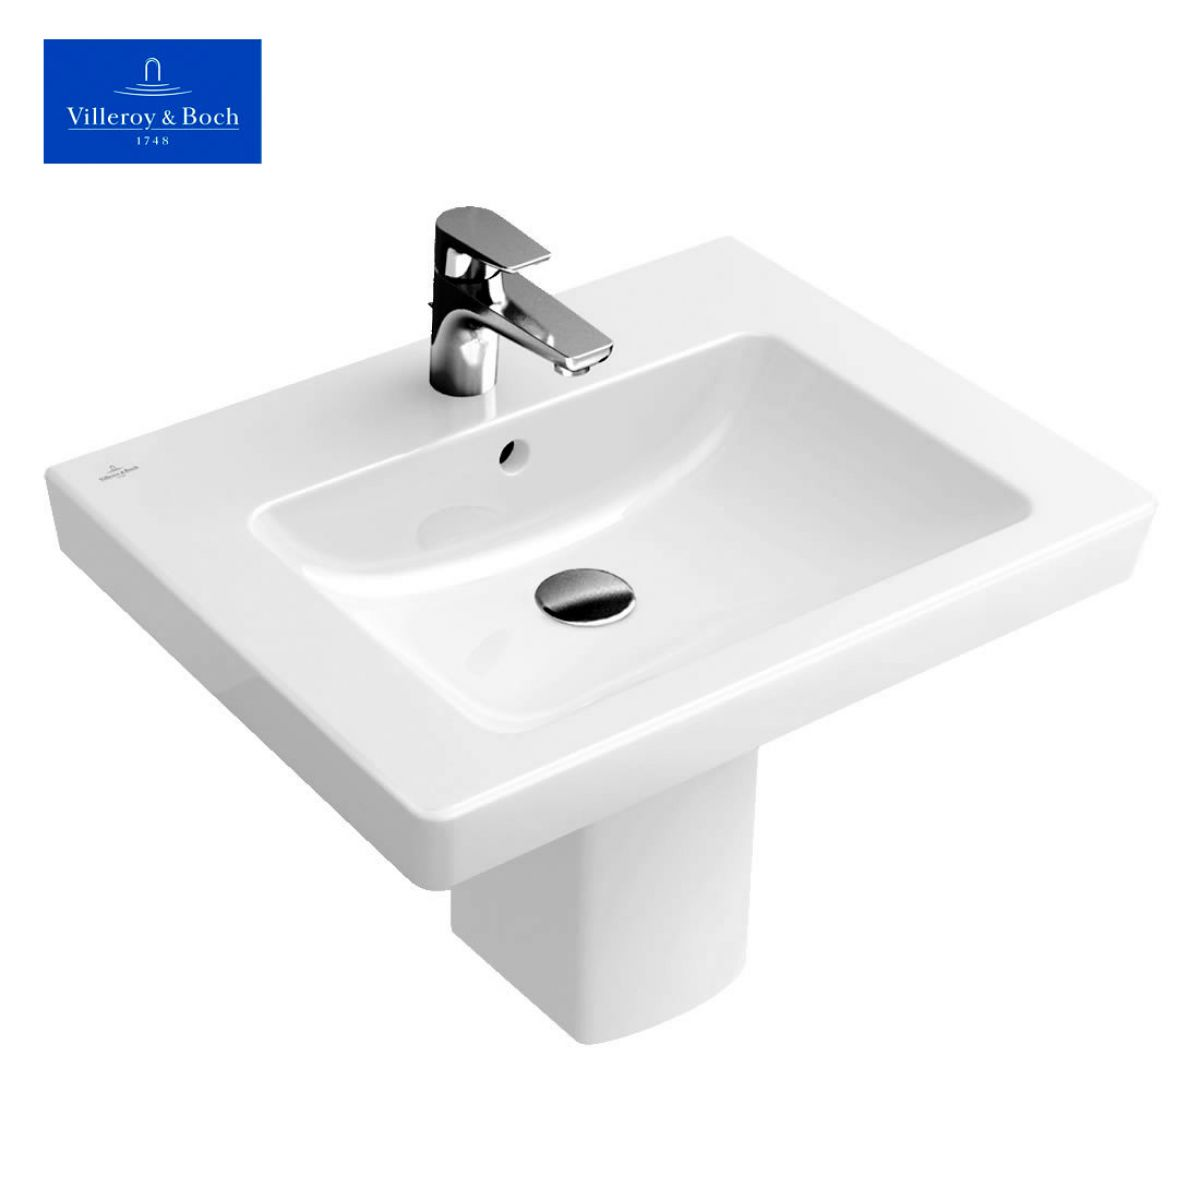 villeroy boch subway 2 0 washbasin uk bathrooms. Black Bedroom Furniture Sets. Home Design Ideas